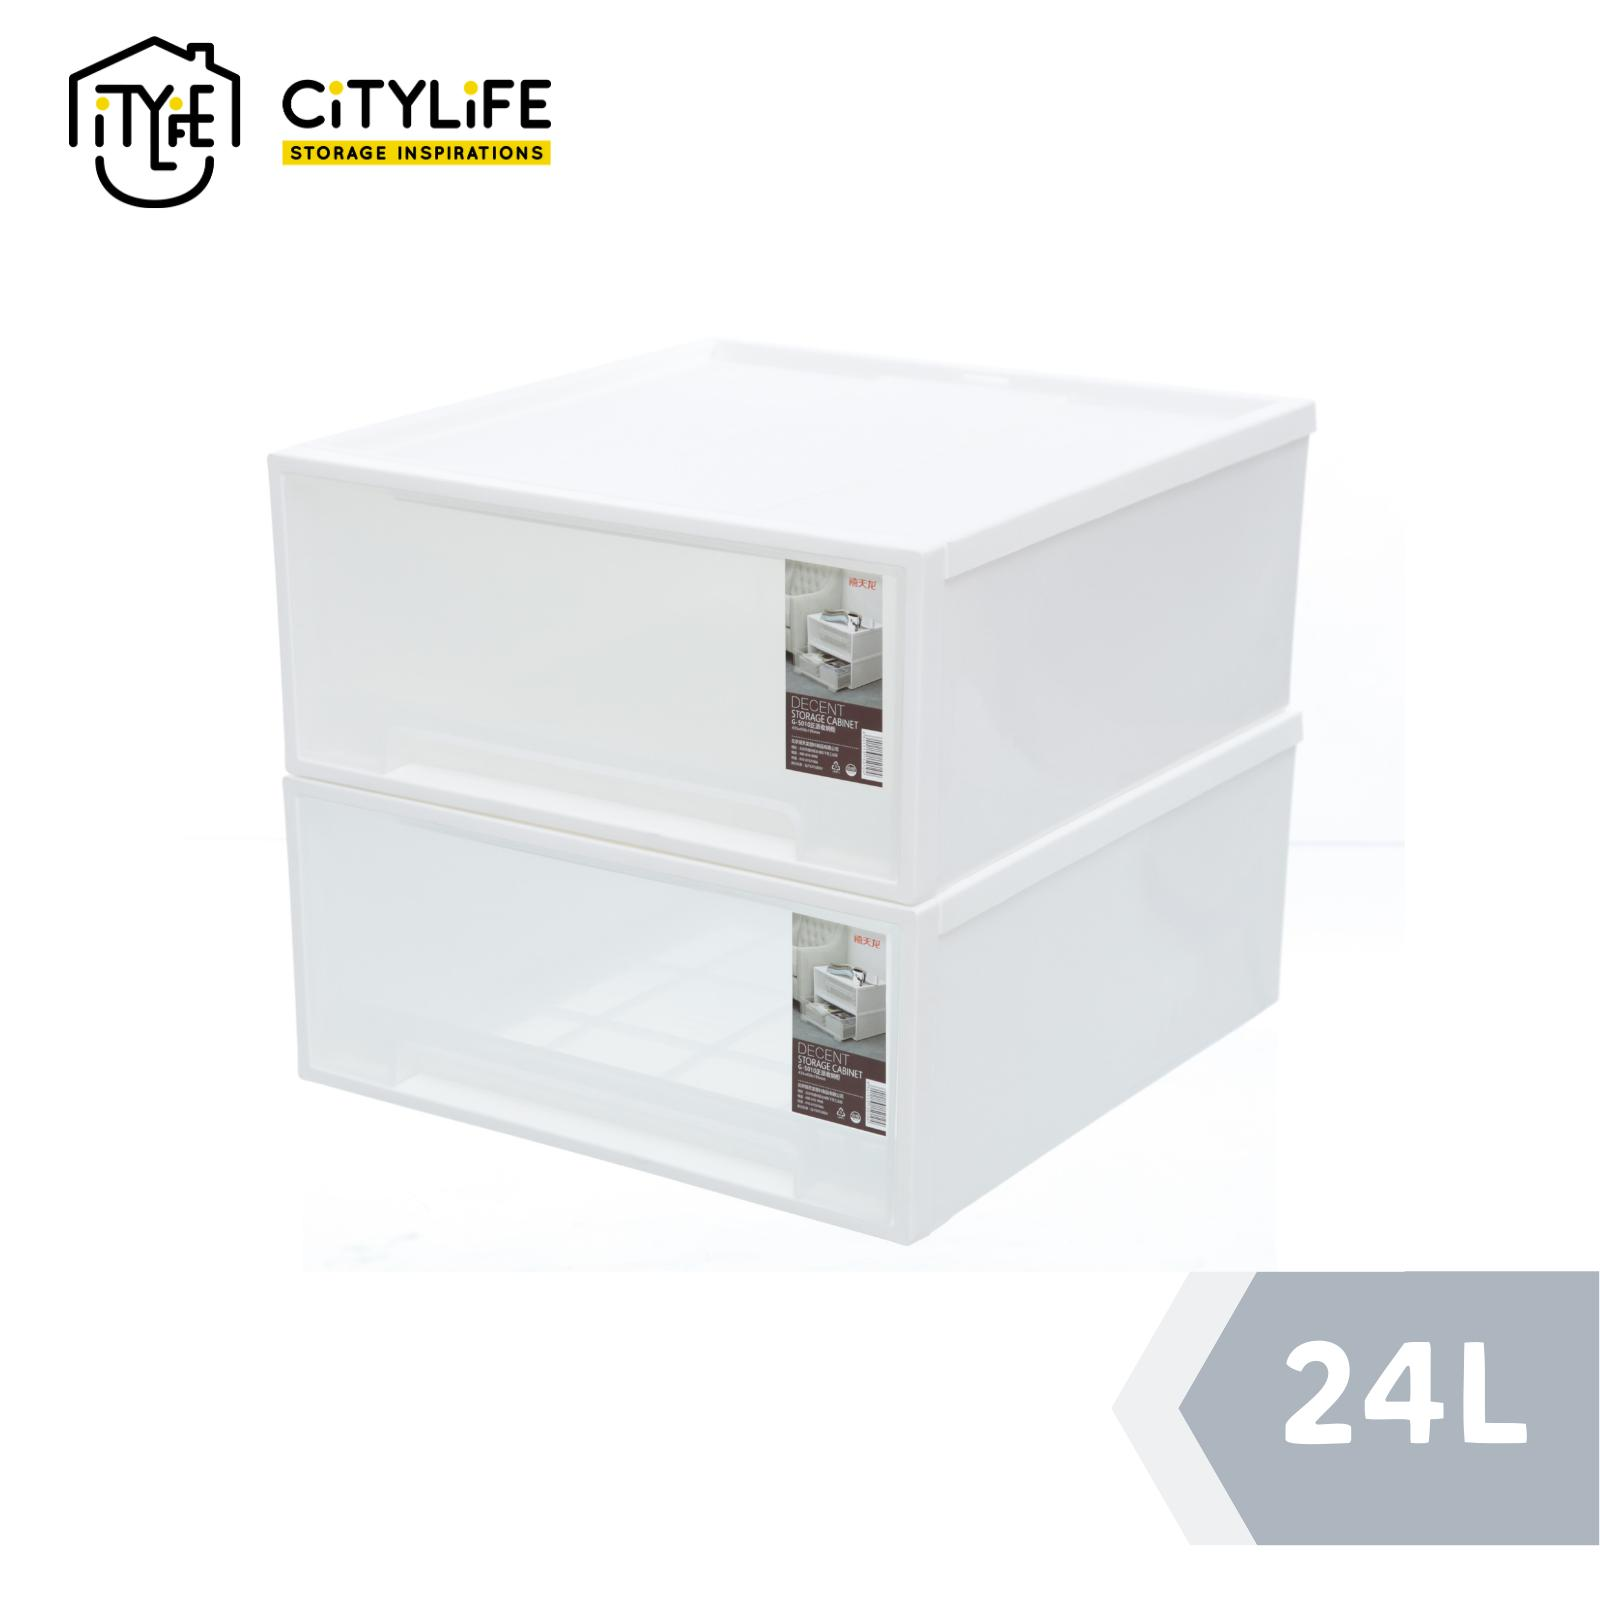 [Bundle of 2] - Citylife 24L Signature Single Tier Drawer